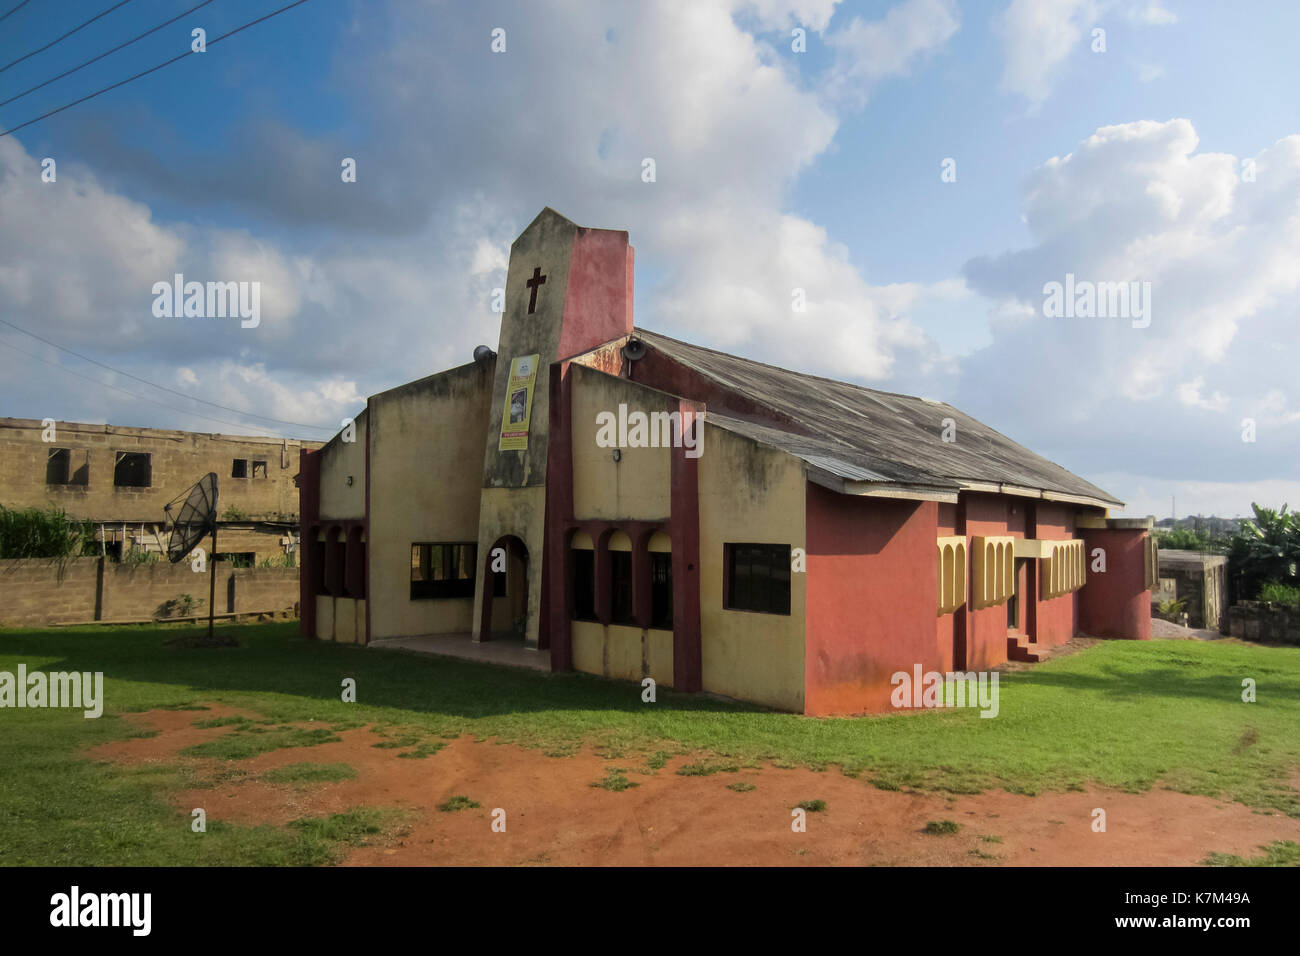 Christian church in Akure, Nigeria - Stock Image